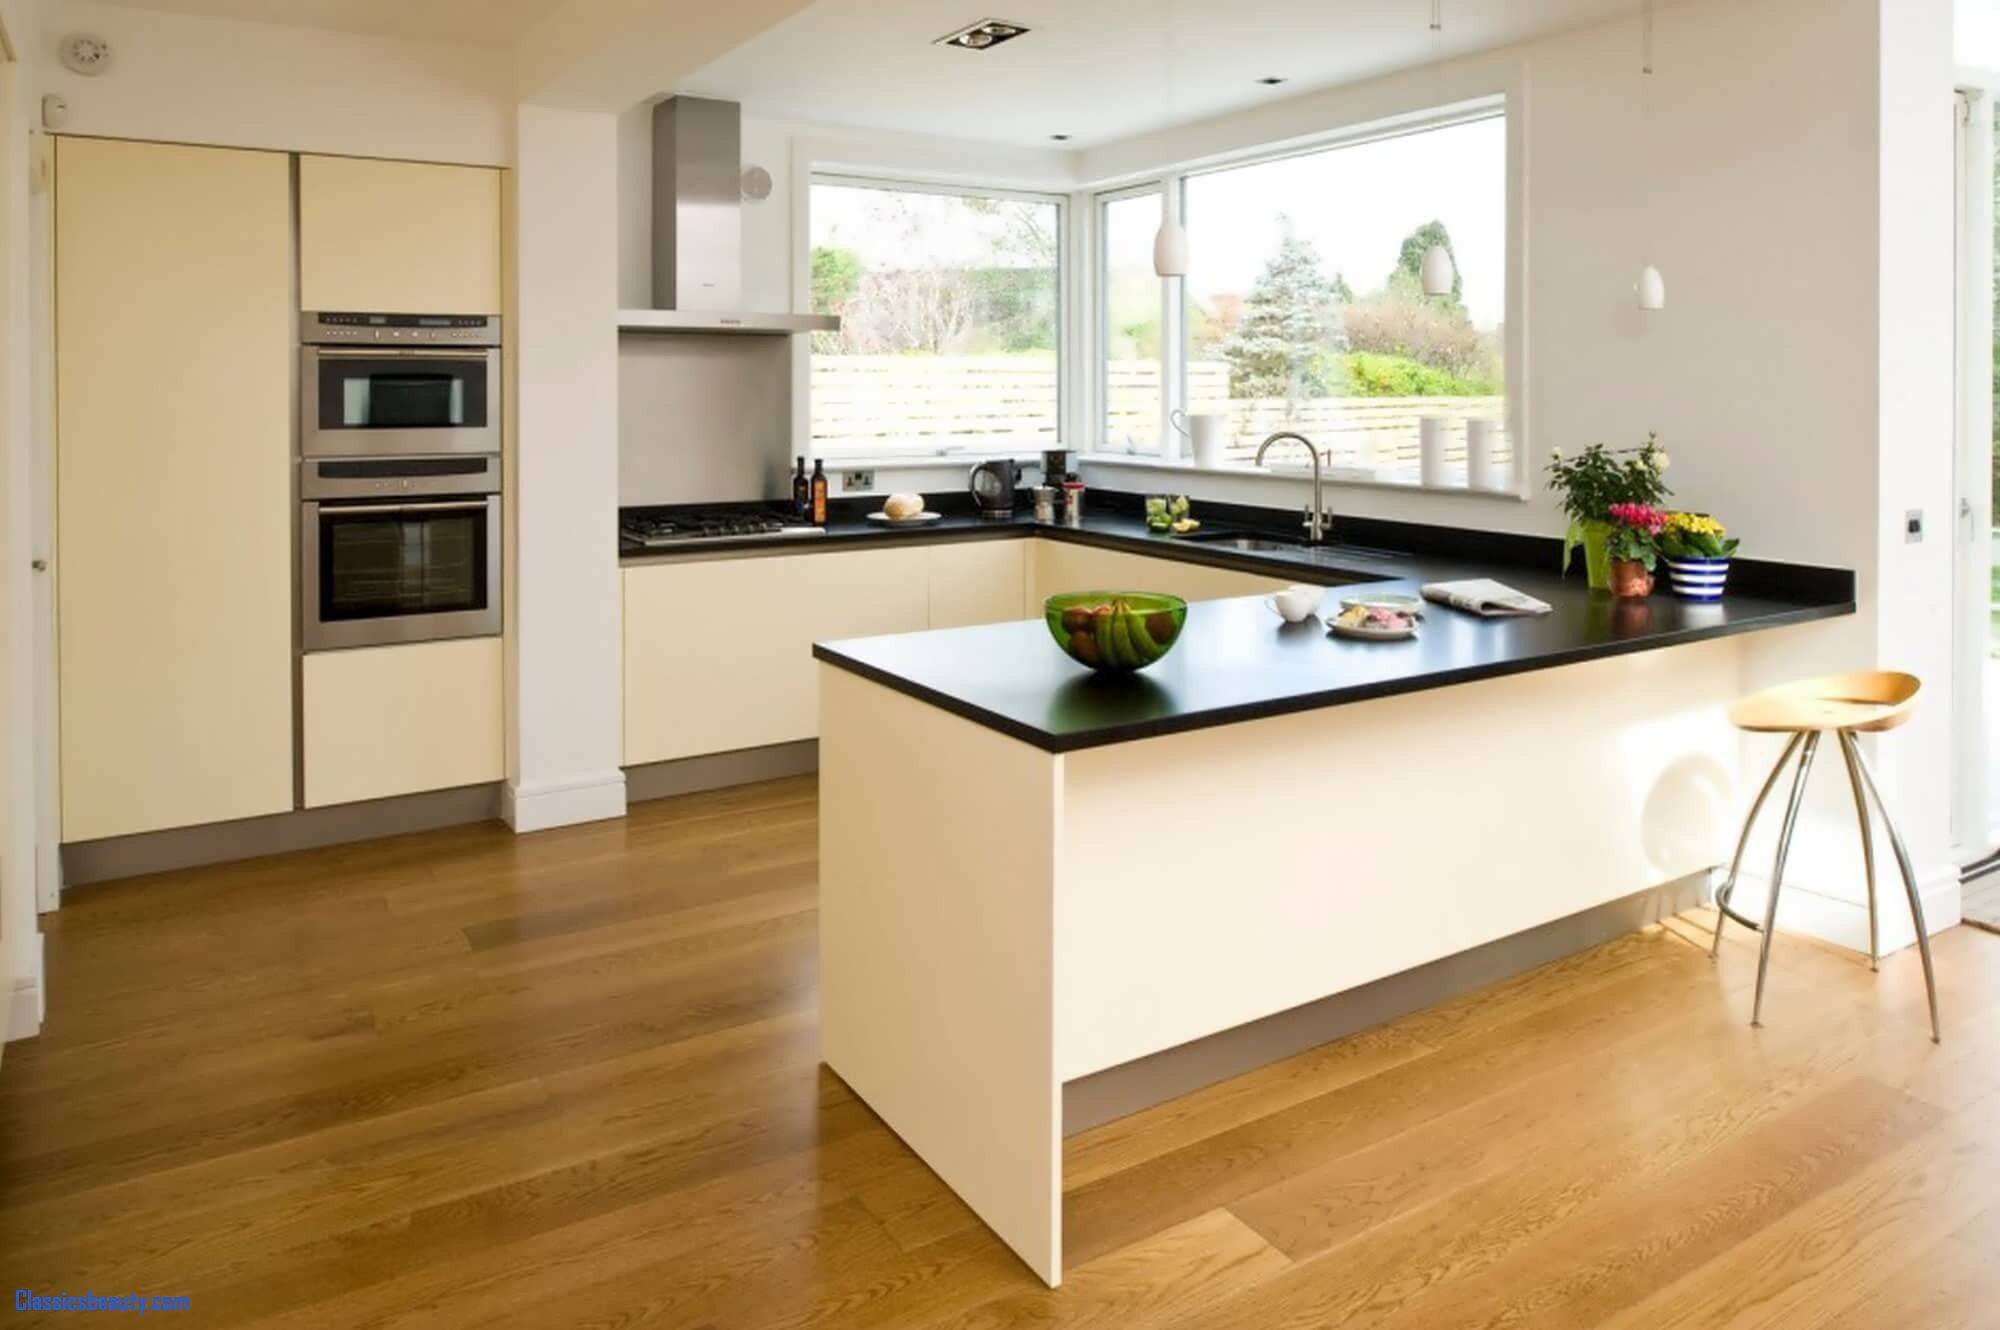 Create a 'gourmet' Kitchen With Single Accessory